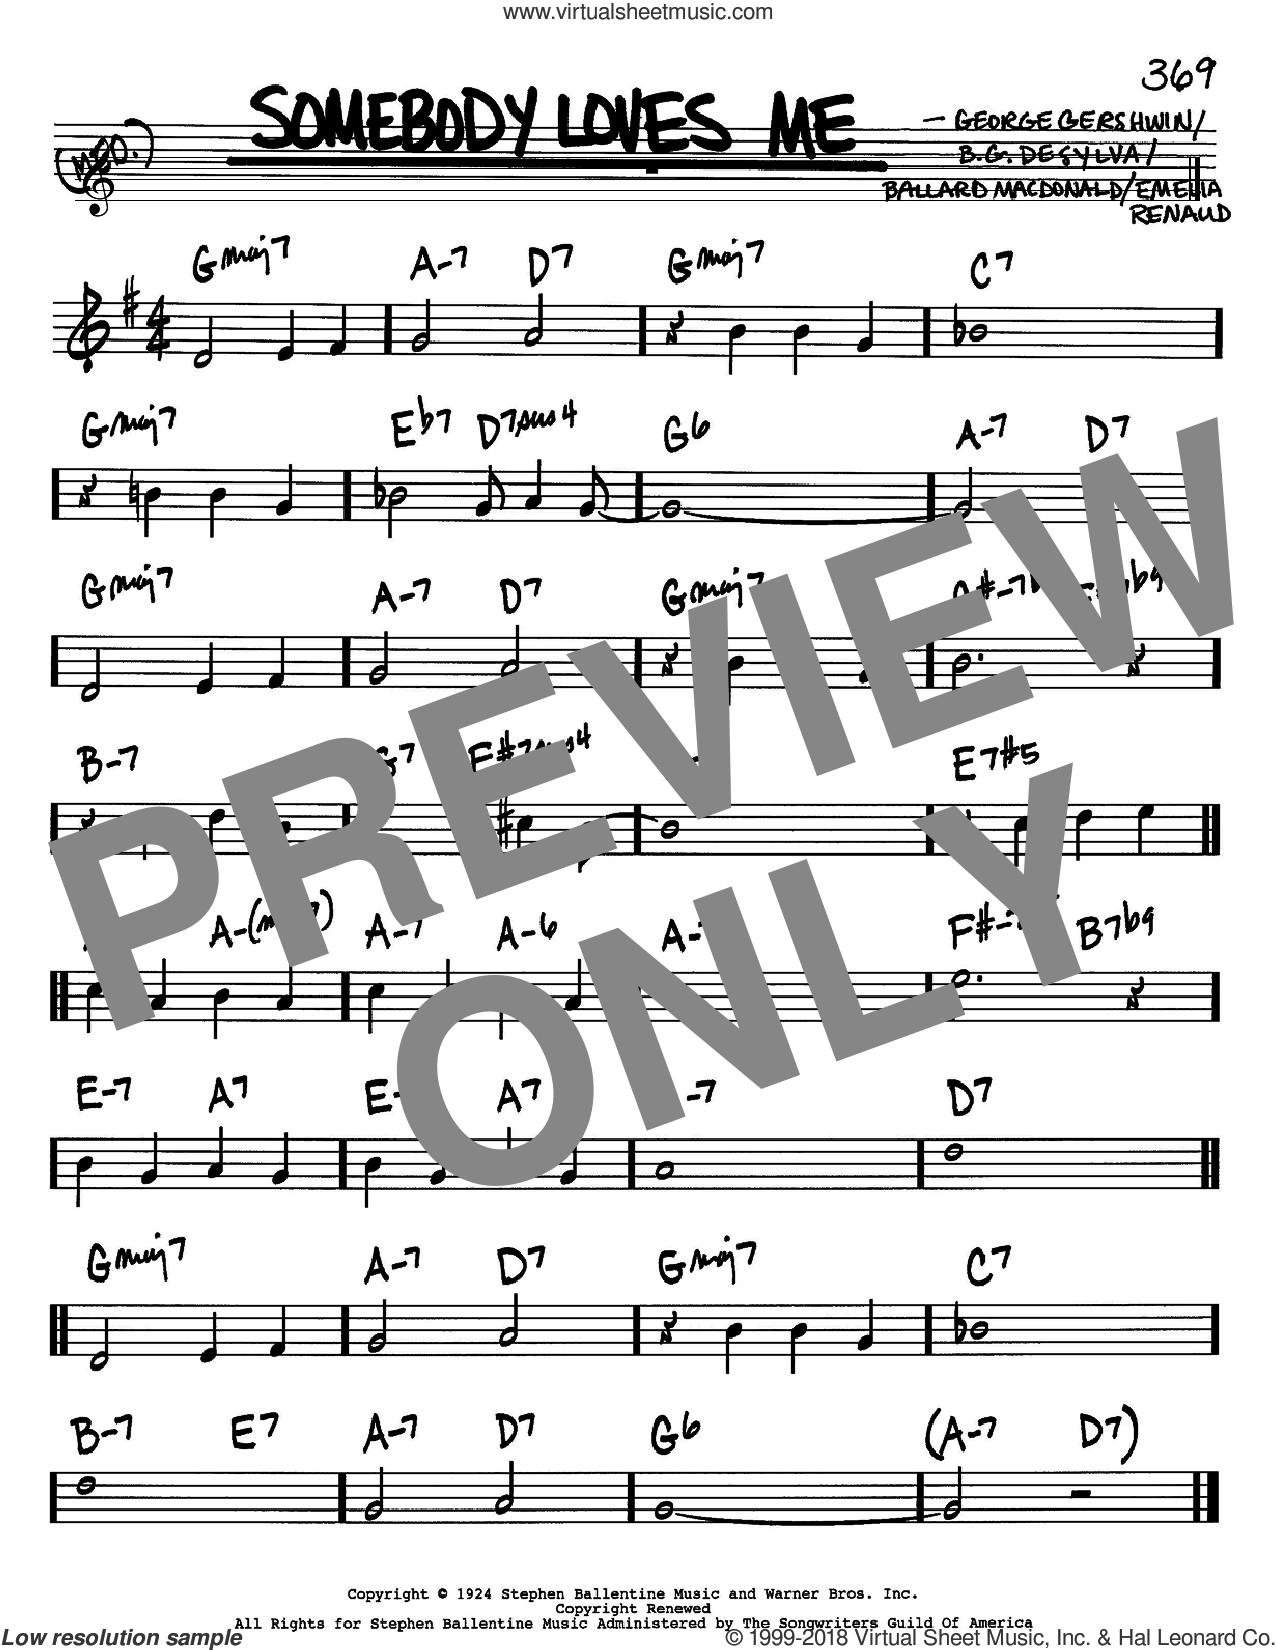 Somebody Loves Me sheet music for voice and other instruments (in Bb) by George Gershwin, Ballard MacDonald and Buddy DeSylva, intermediate skill level